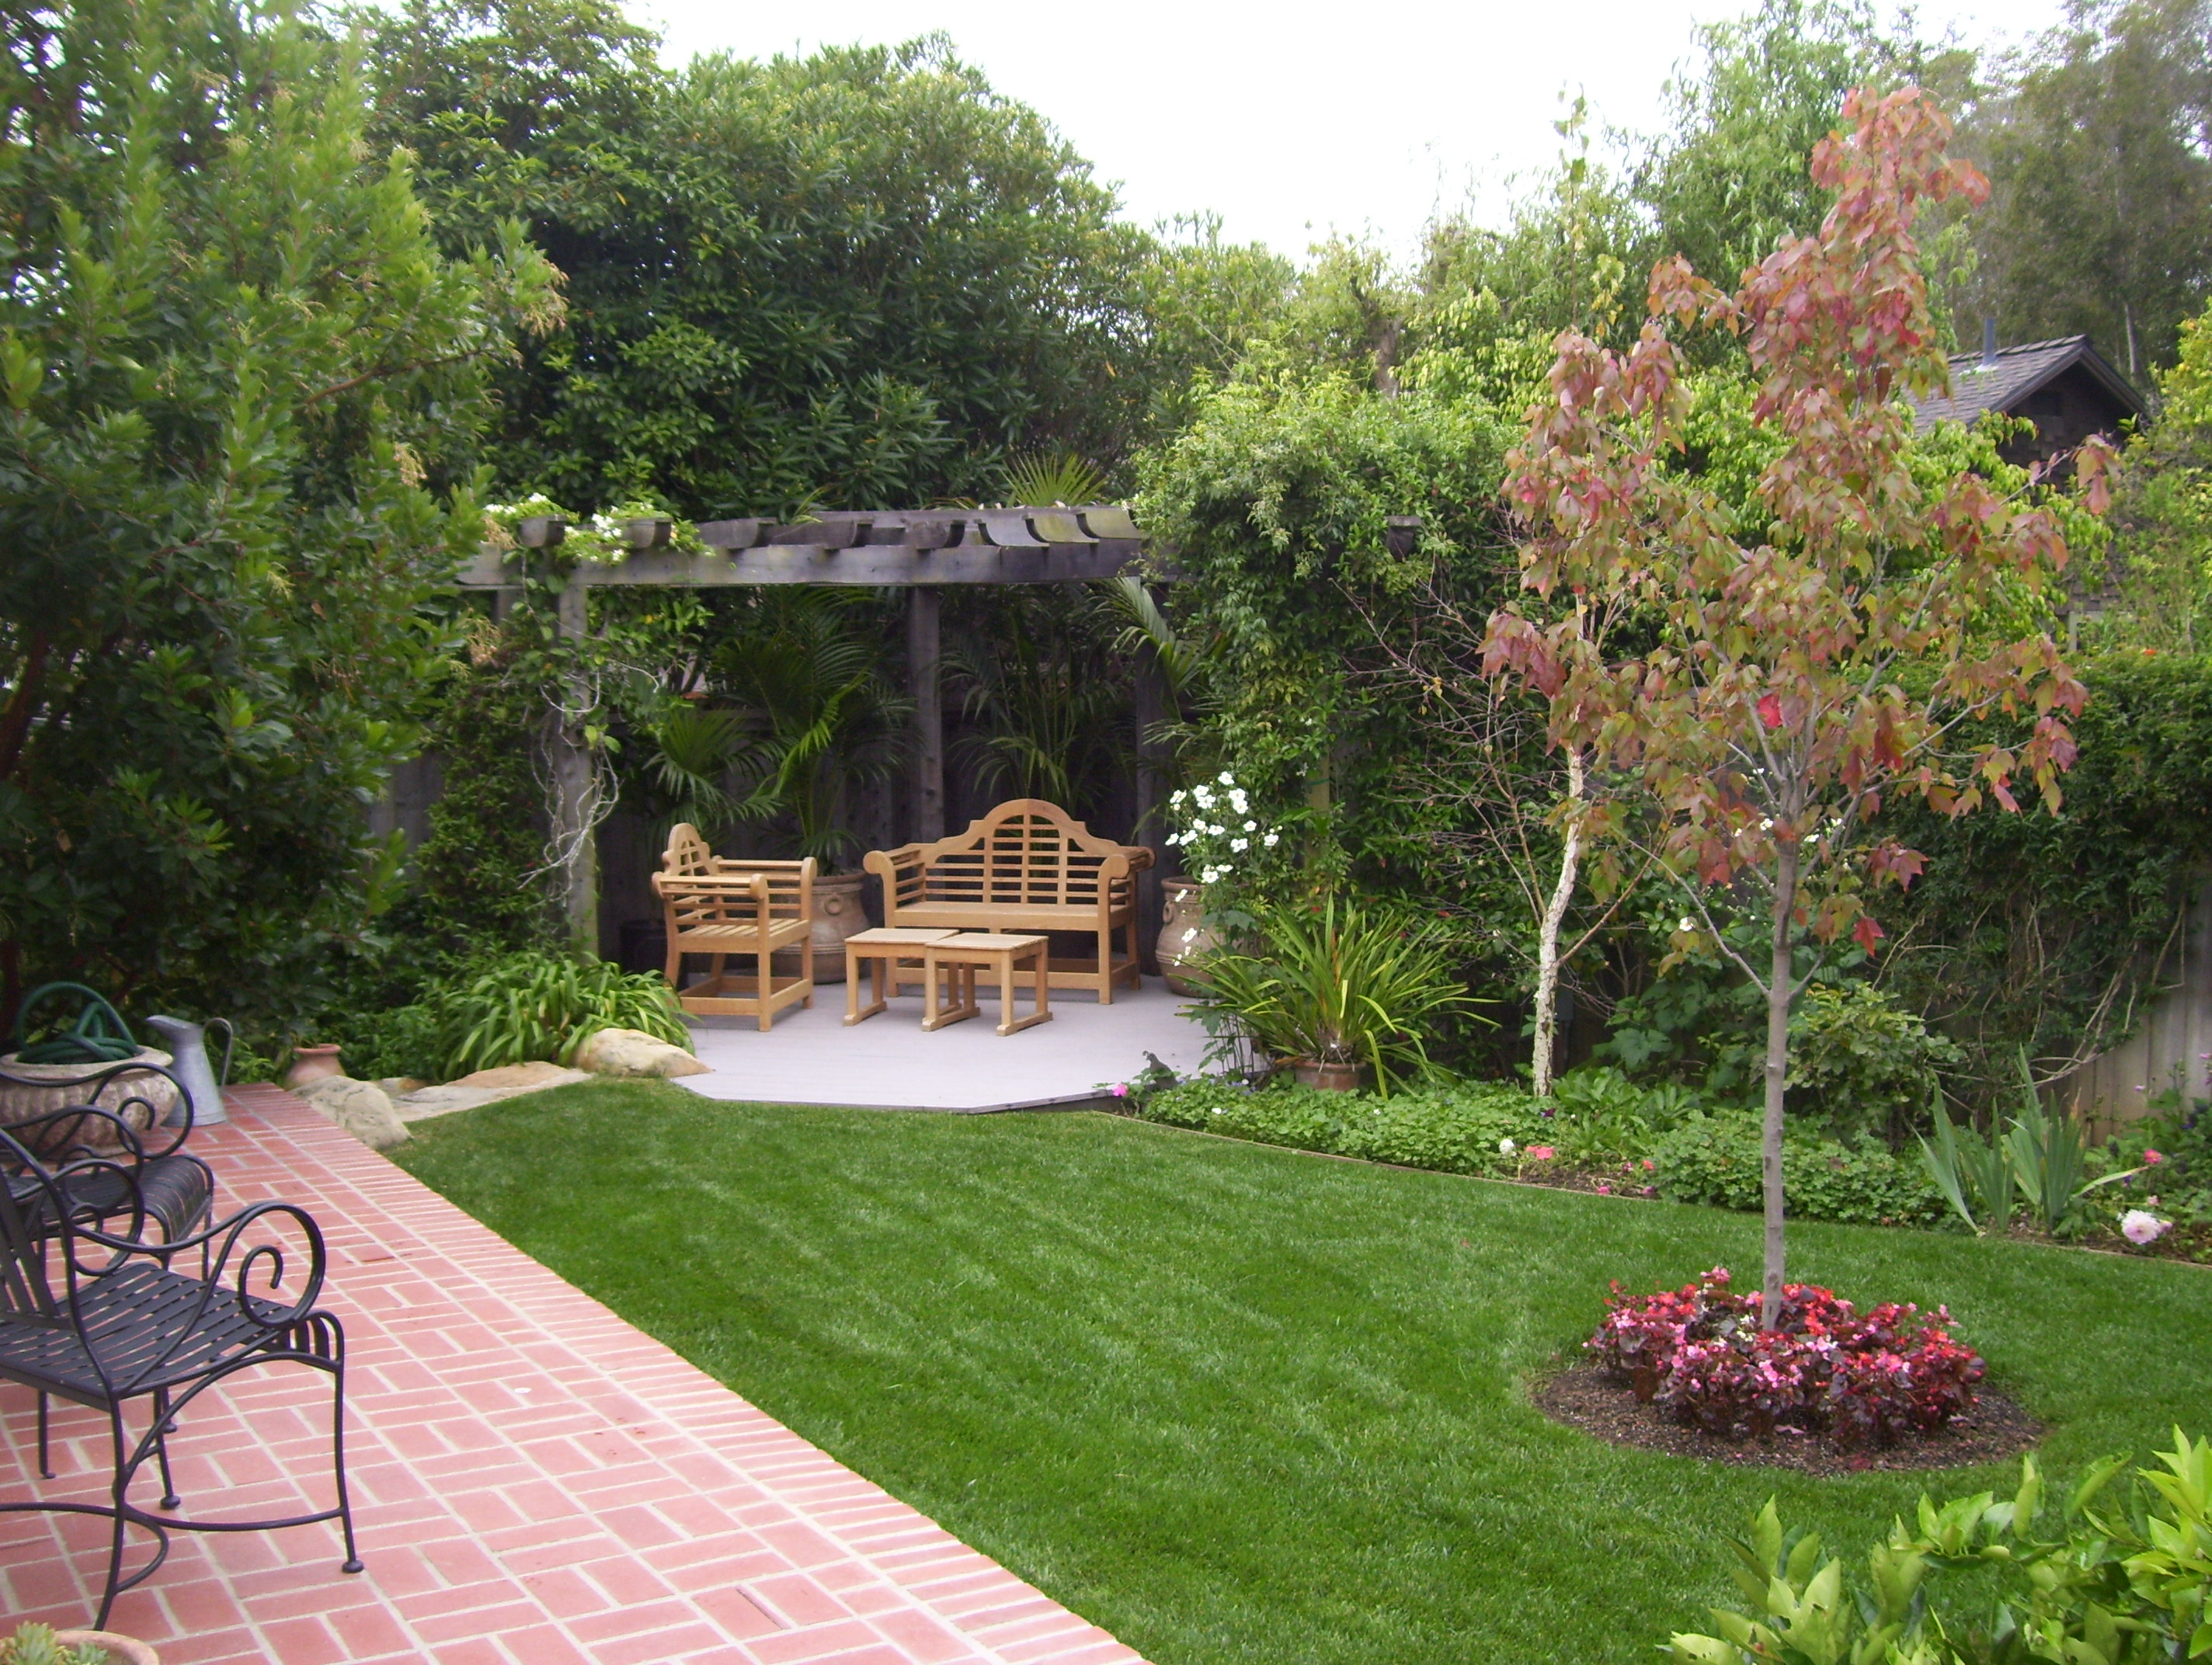 Backyard landscaping ideas santa barbara down to earth for Backyard landscaping ideas